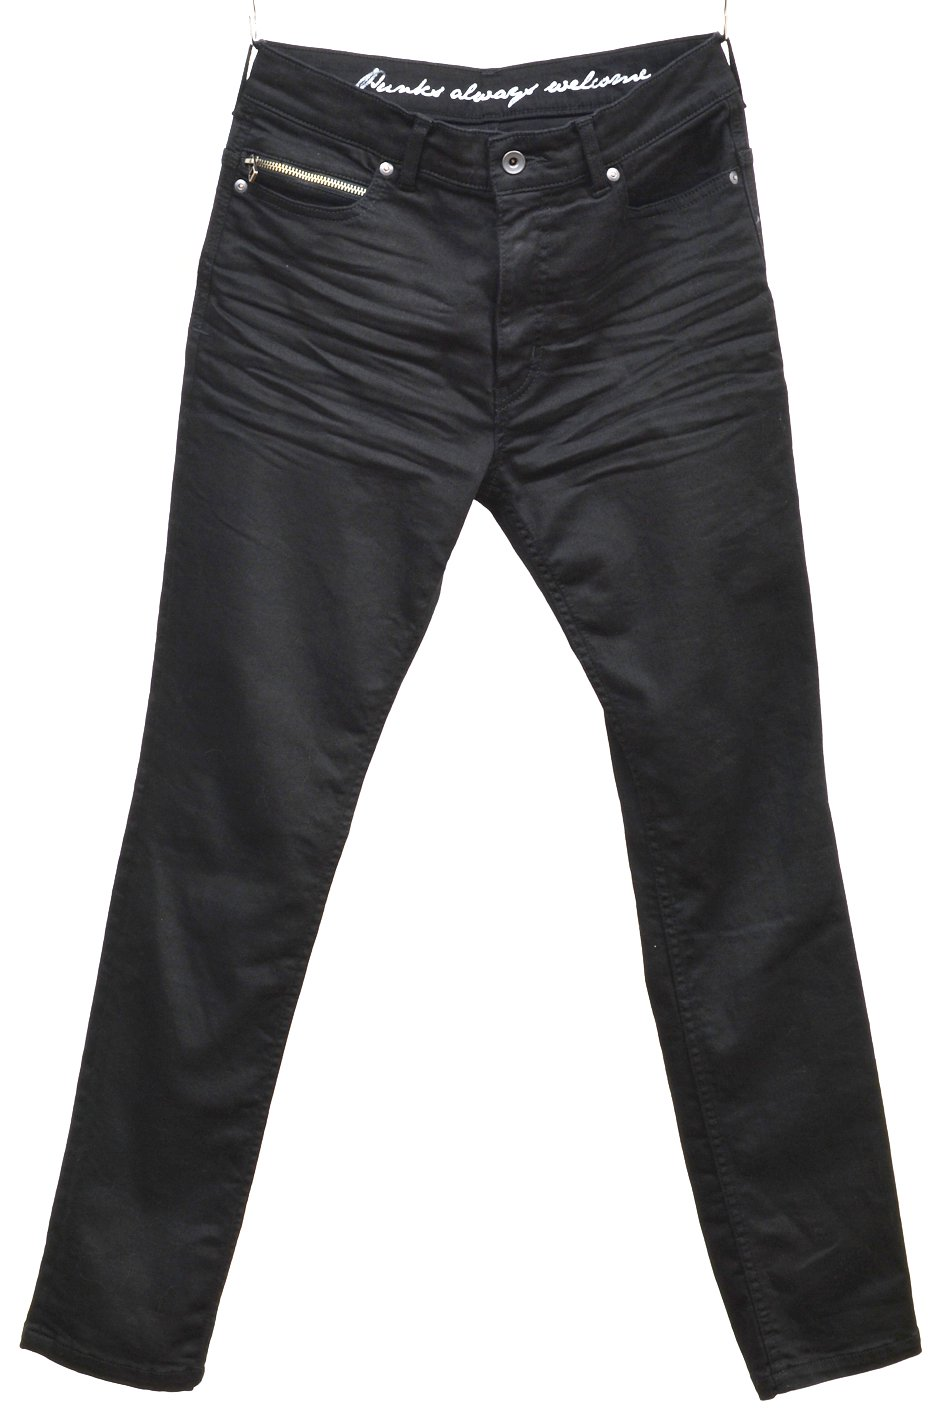 Super ST Denim Pants Vicious/Black